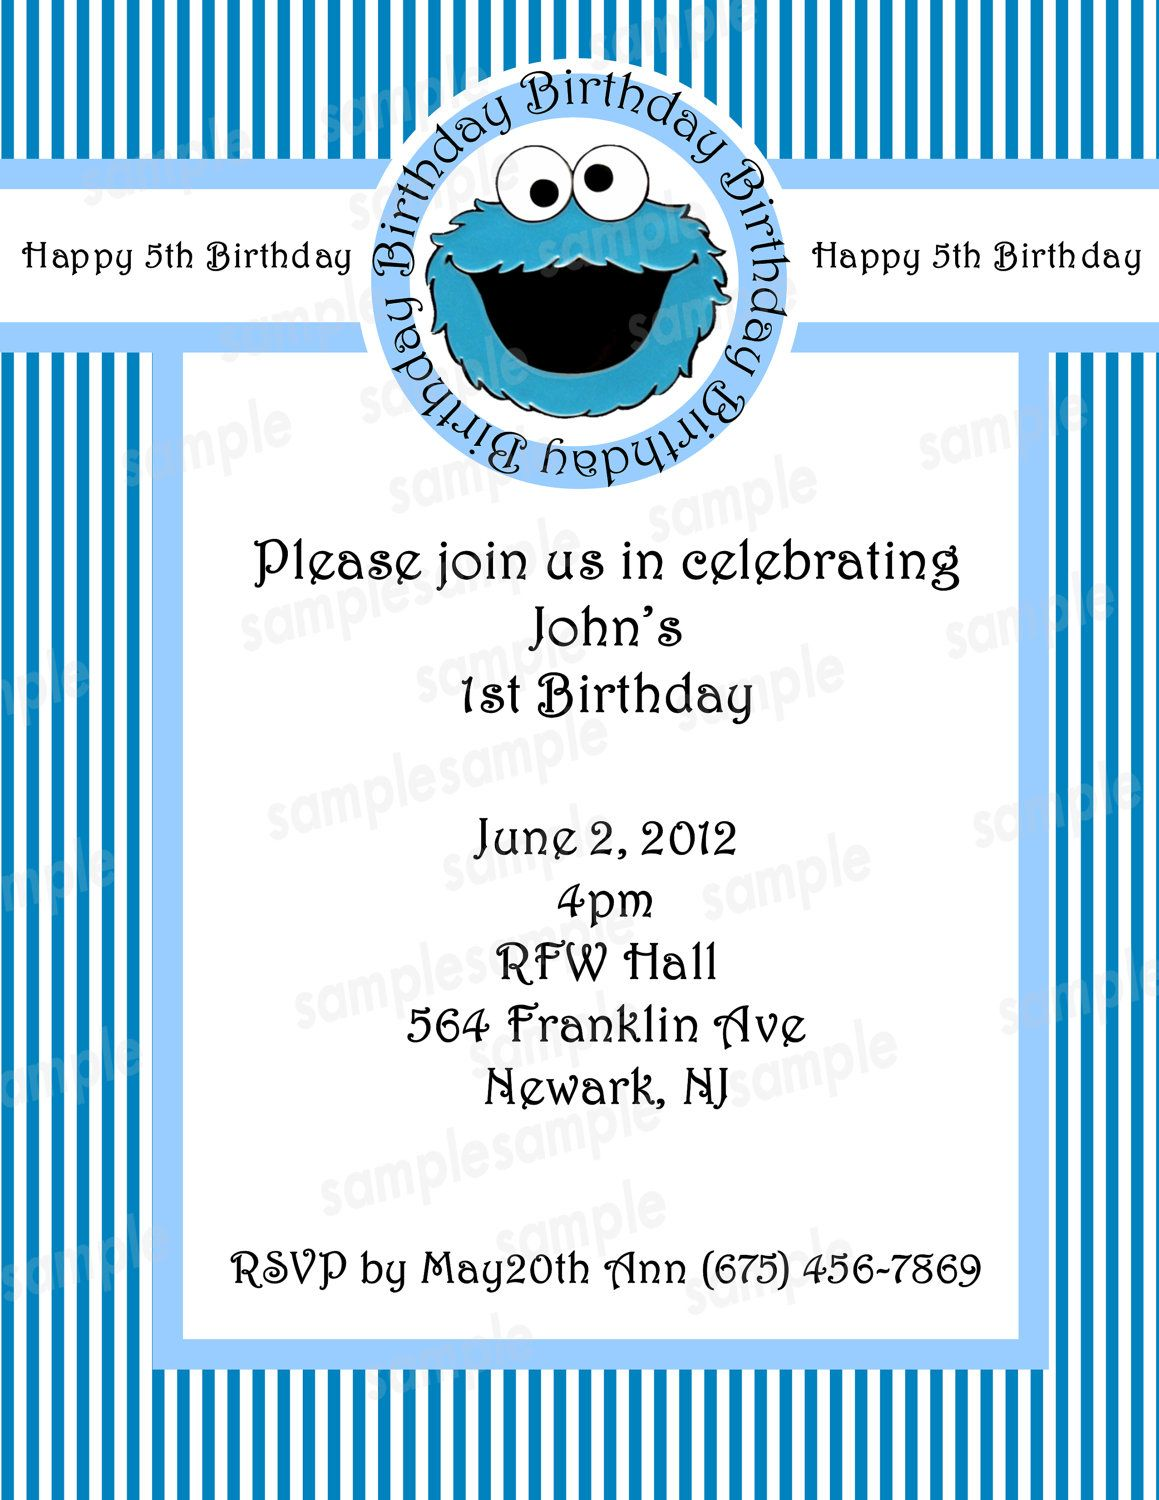 cookie monster invitation - announcement PDF - DIY - Customized ...